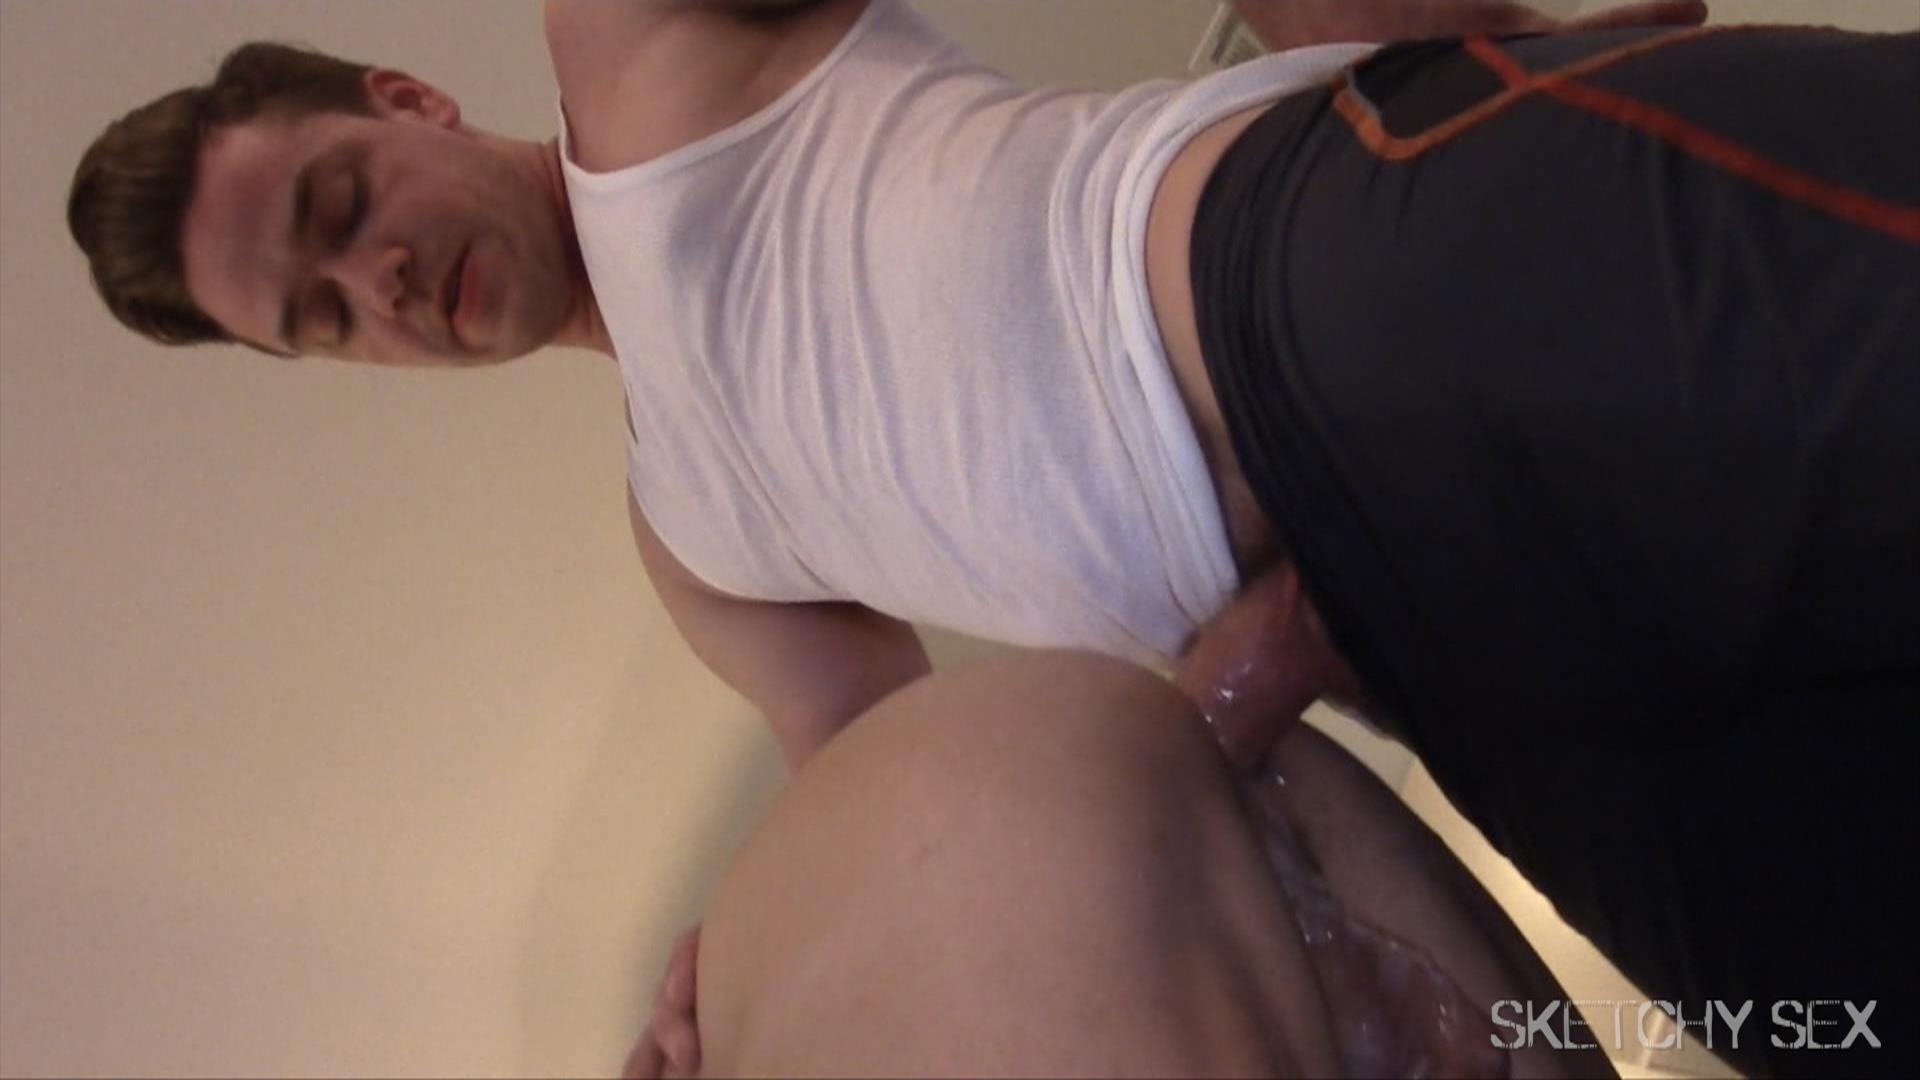 Sketchy-Sex-Download-Free-Video-Bareback-Sex-Party-Amateur-Gay-Porn-11 Jock Takes As Many Raw Loads Up The Ass As Possible